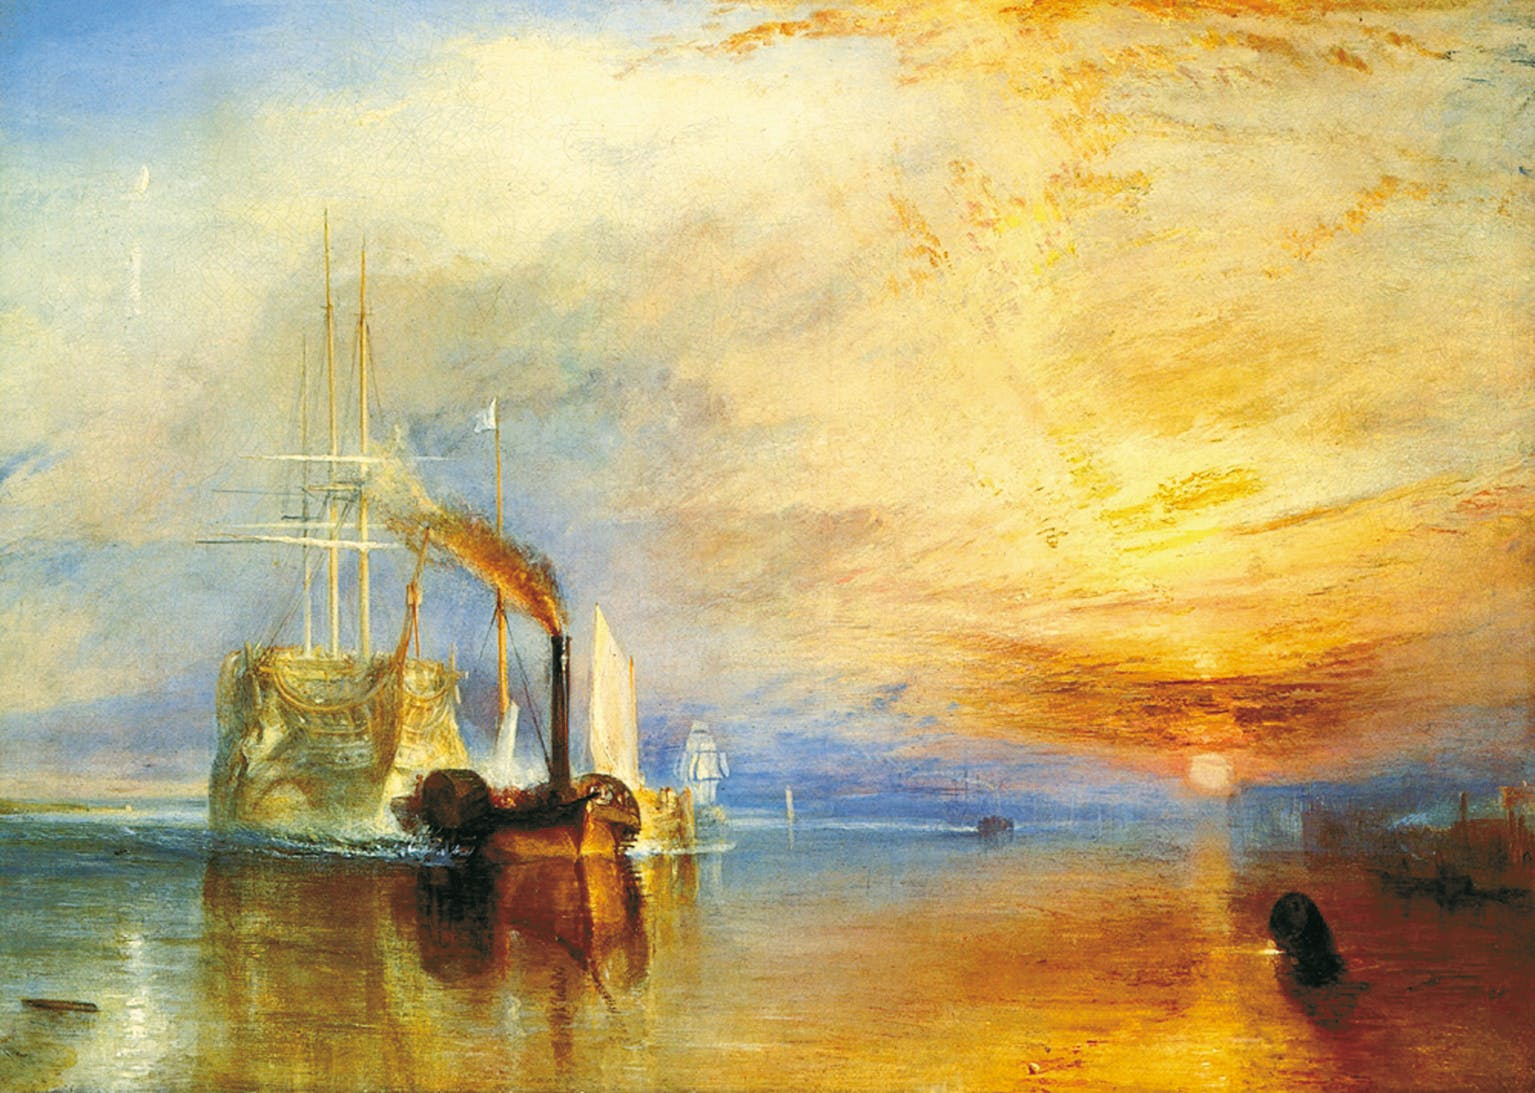 wentworth-holzpuzzle-joseph-mallord-william-turner-the-fighting-temeraire-250-teile-puzzle-wentw